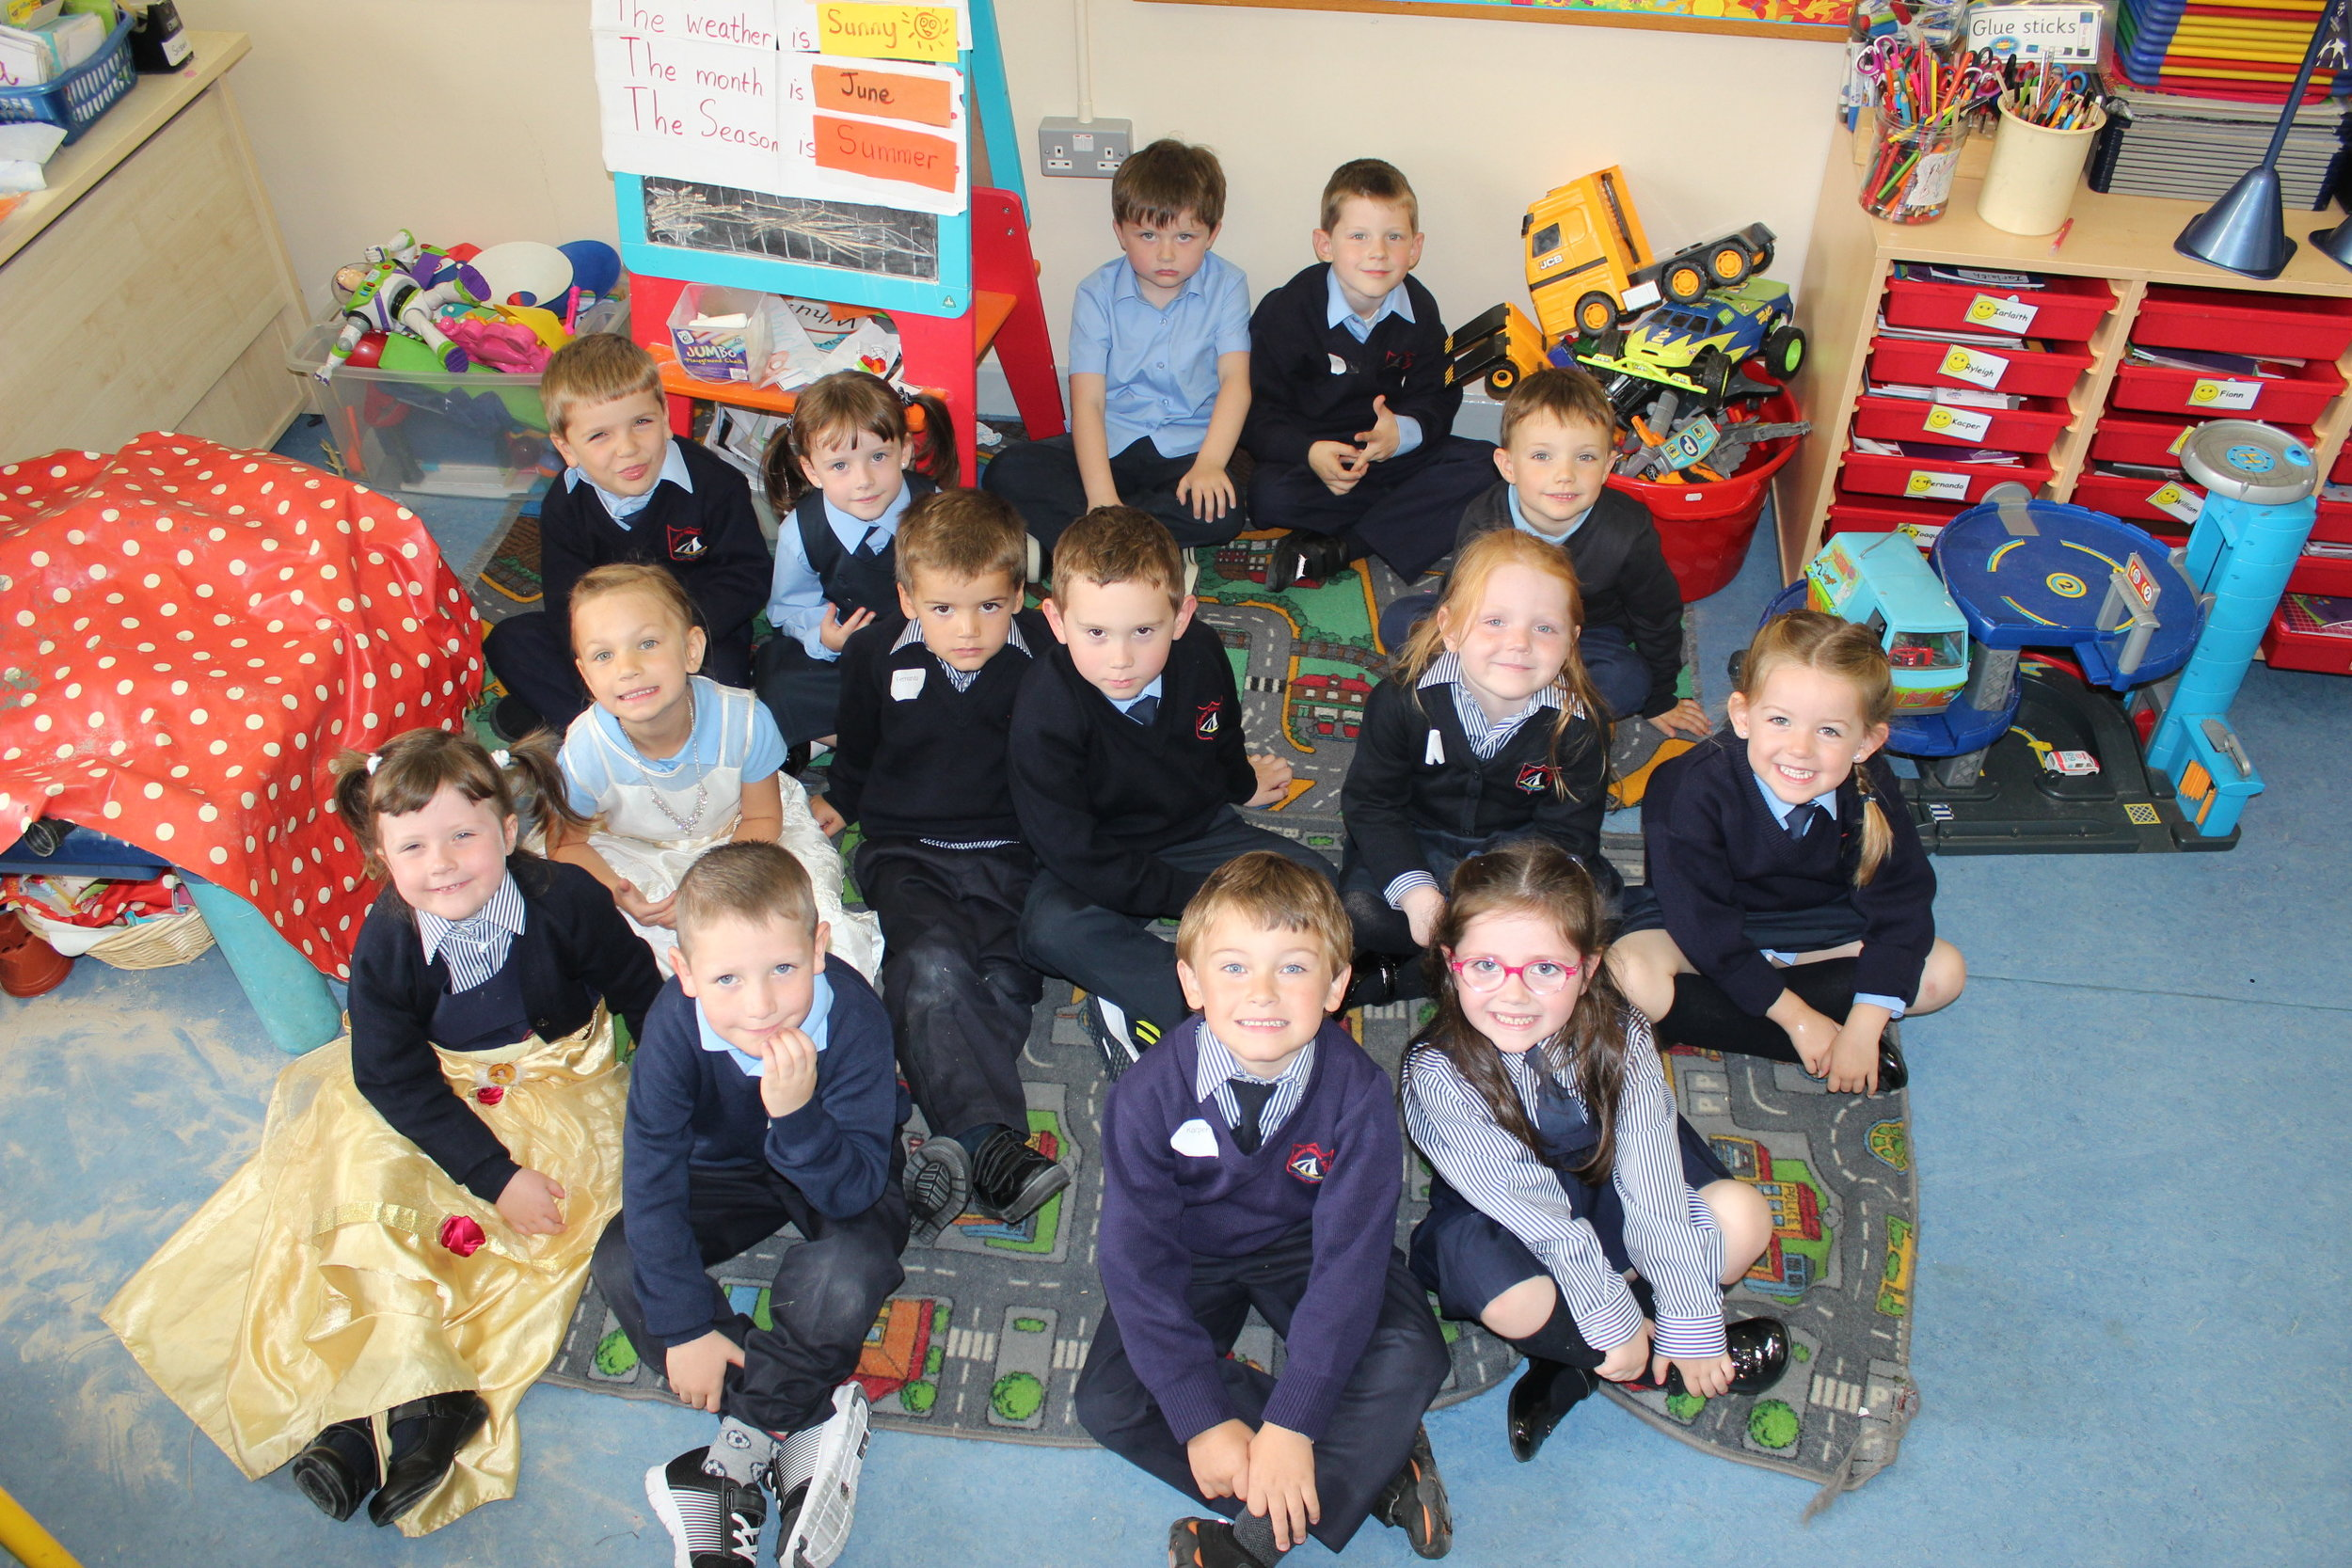 Ms. Ferguson's Junior Infants get ready for storytime after some Aistear play (including dress-up!).